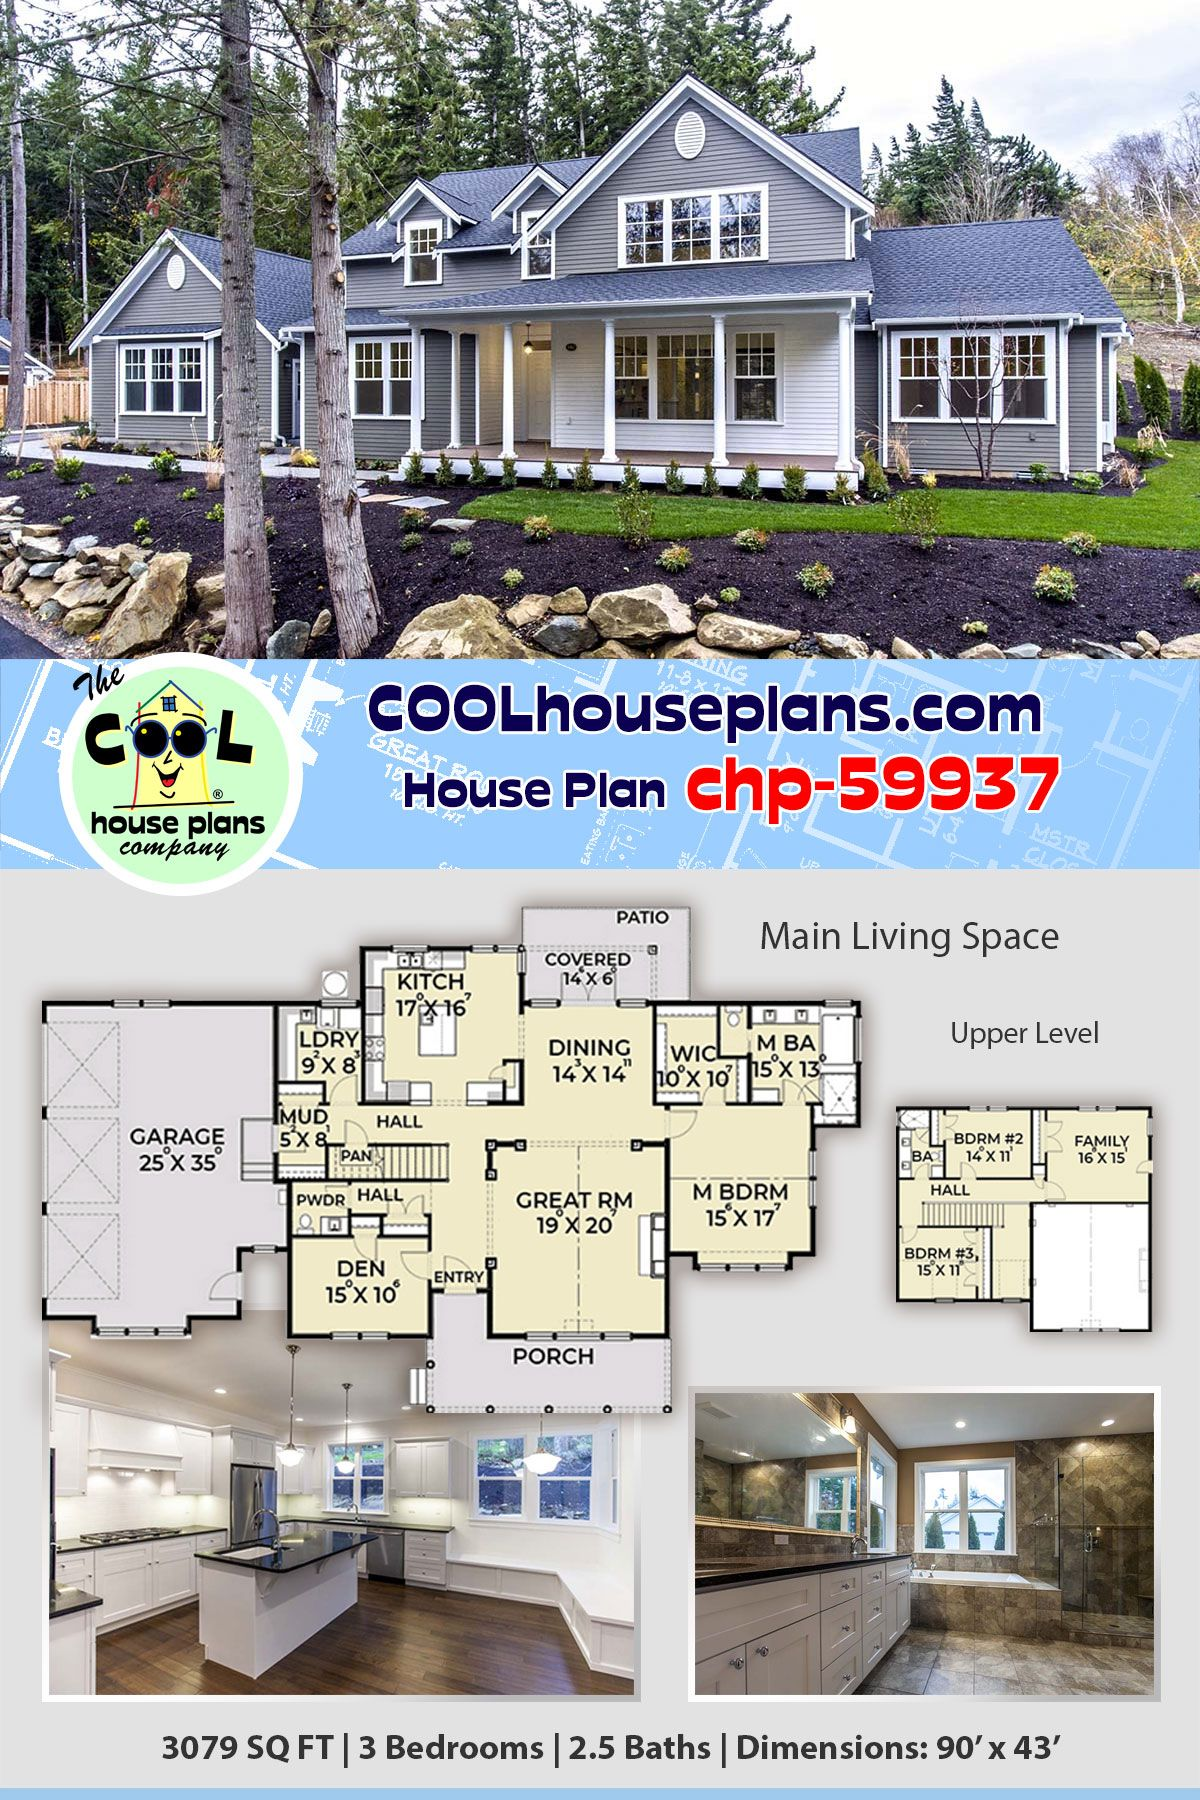 Best 4 Bedroom Modern Farmhouse With 3 5 Bathrooms And An Outdoor Living Space At Cool House Plans In 2020 House Plans Farmhouse Craftsman House Plans My House Plans